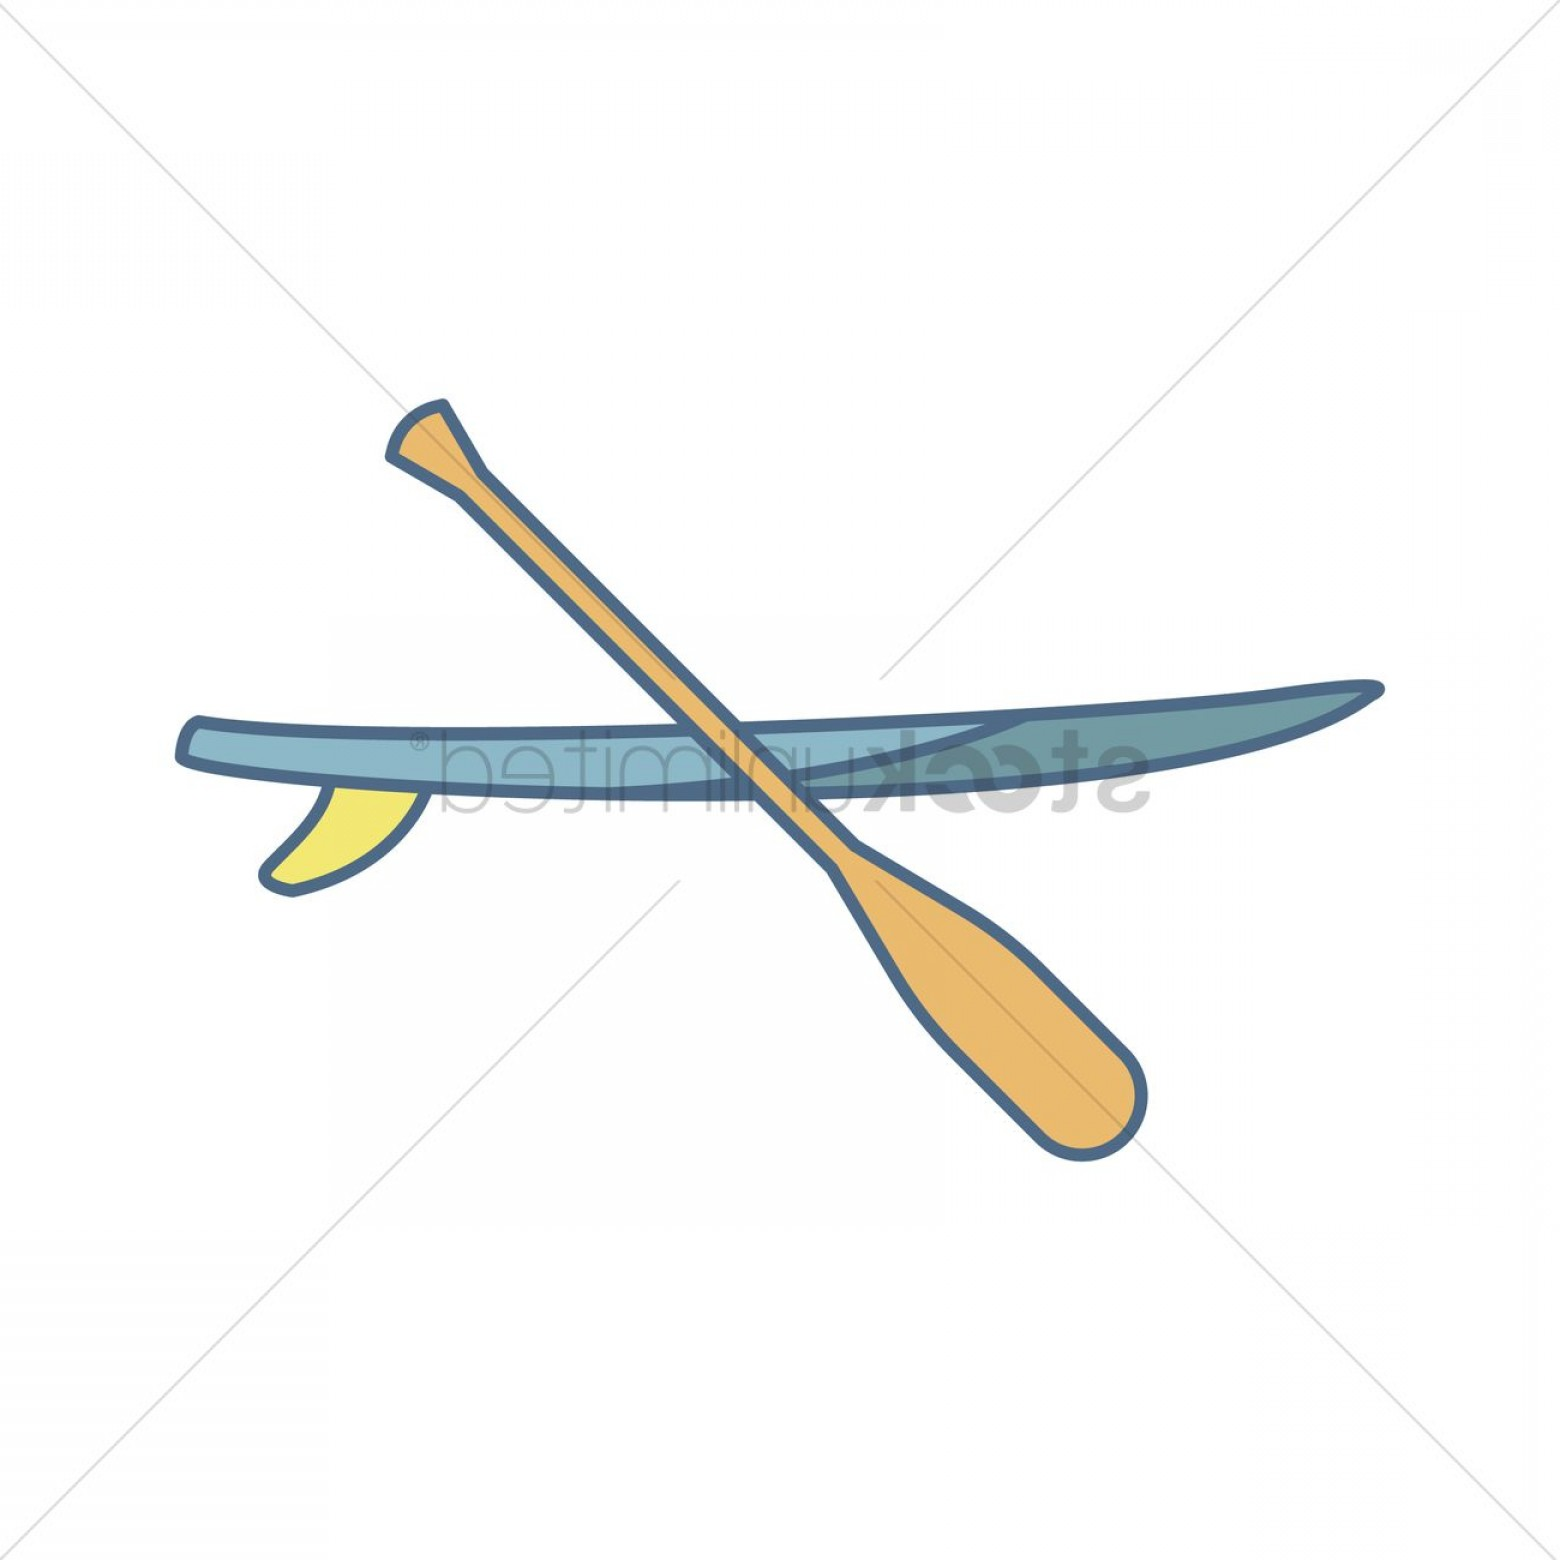 Paddleboard Vector Icons: Stand Up Paddle Board And Paddle Stick